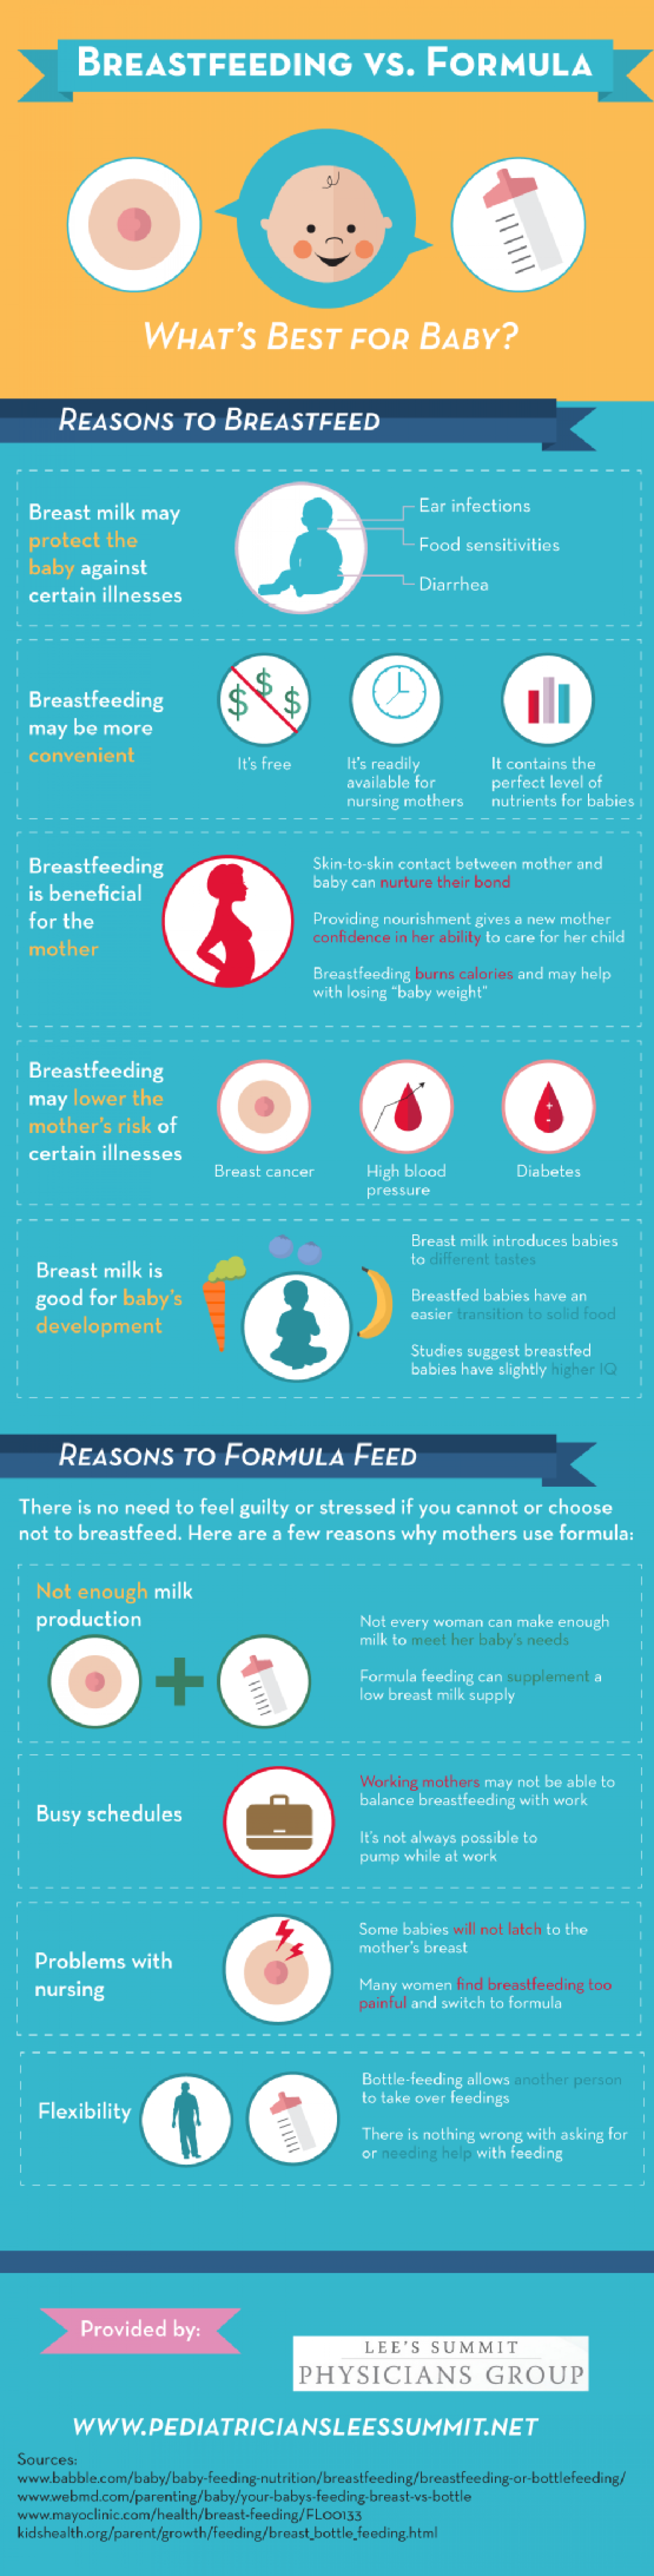 Breastfeeding vs. Formula: What's Best for Baby? Infographic